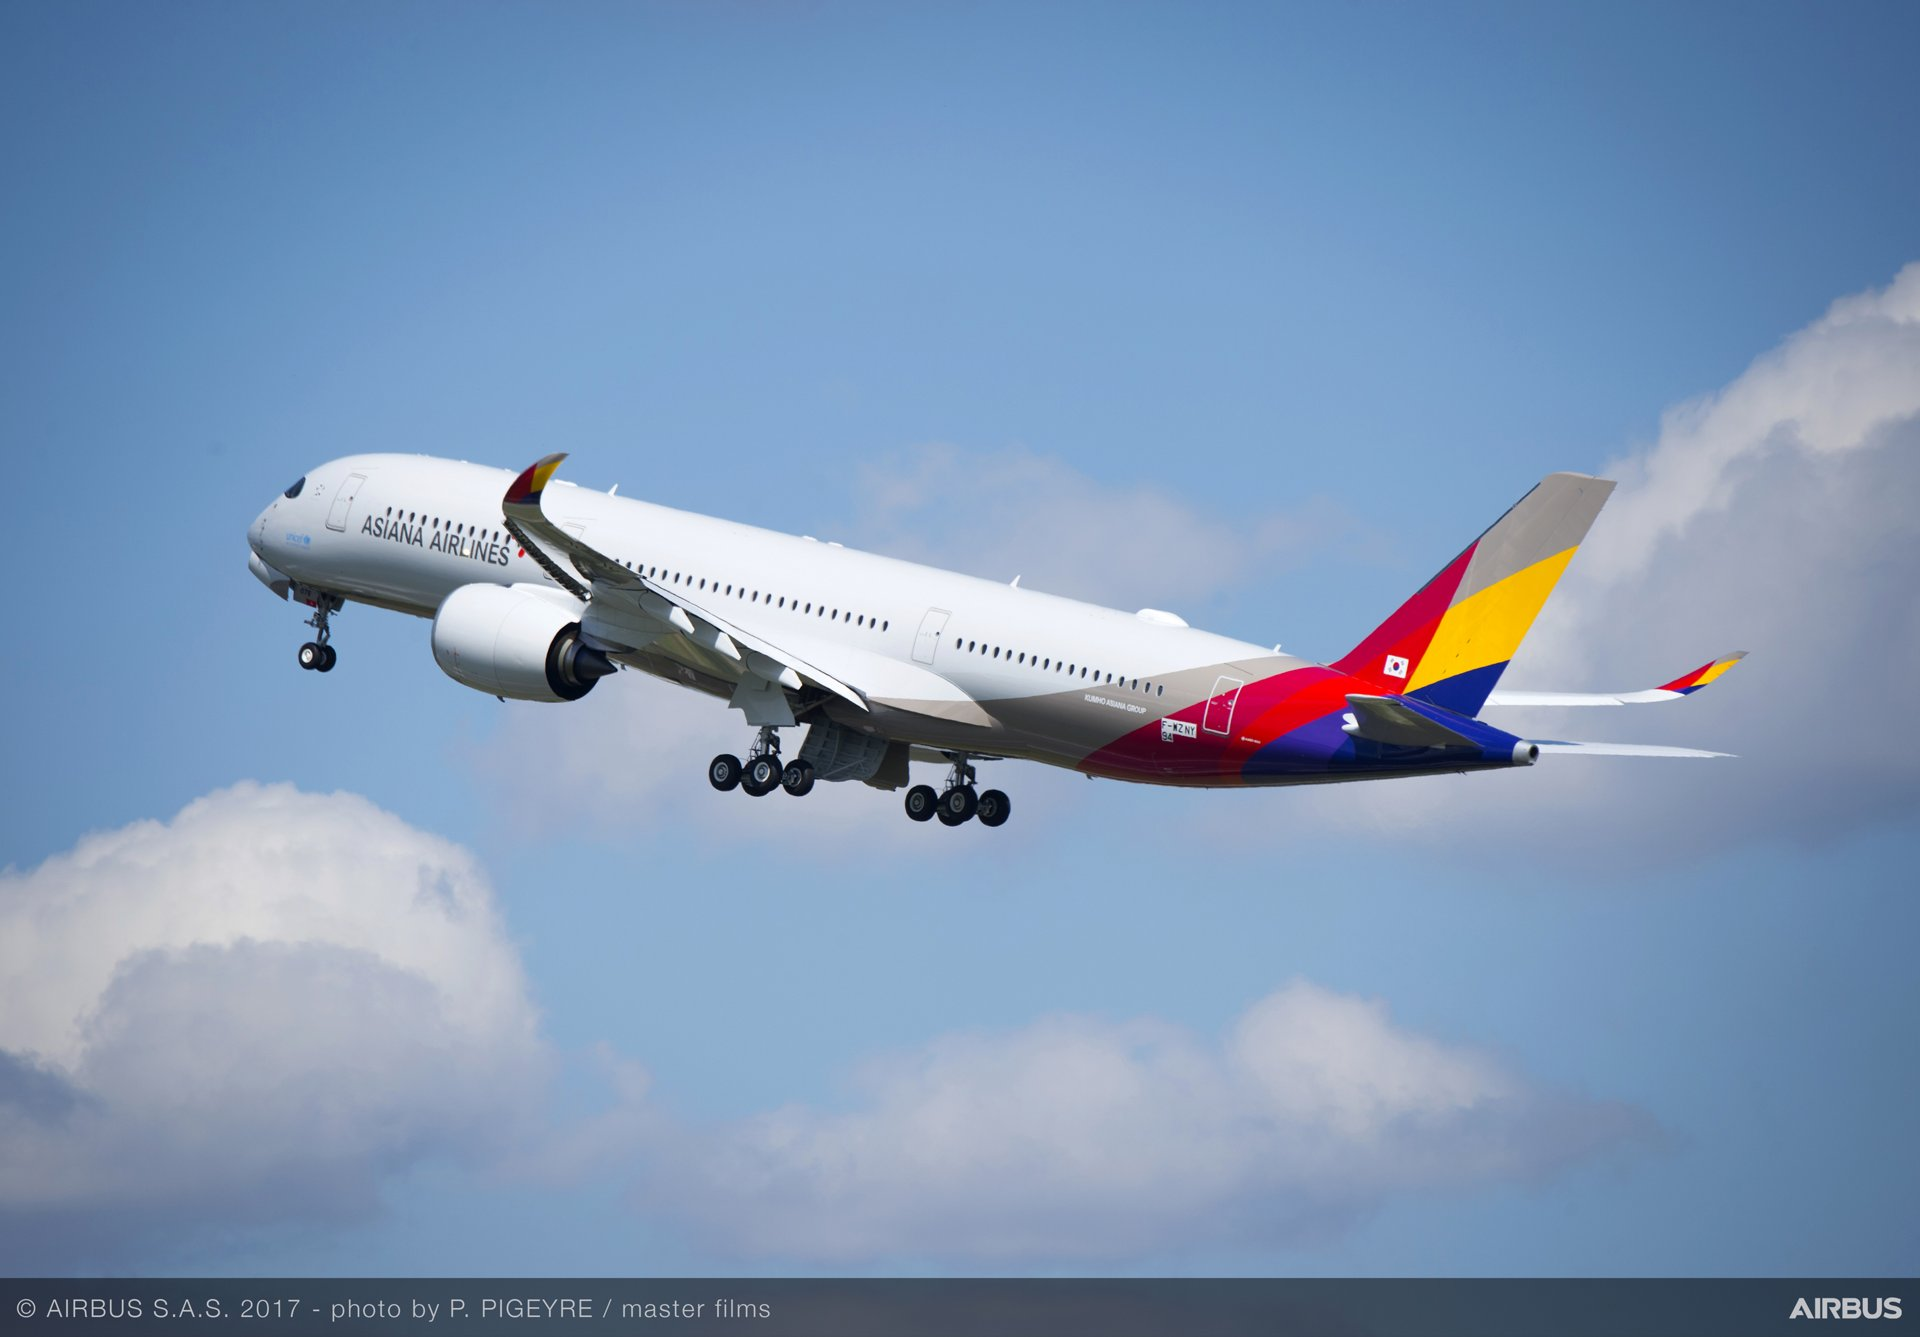 The first Asiana Airlines A350 XWB – an A350-900 version delivered by Airbus in April 2017 – is an advanced aircraft built with next-generation technology